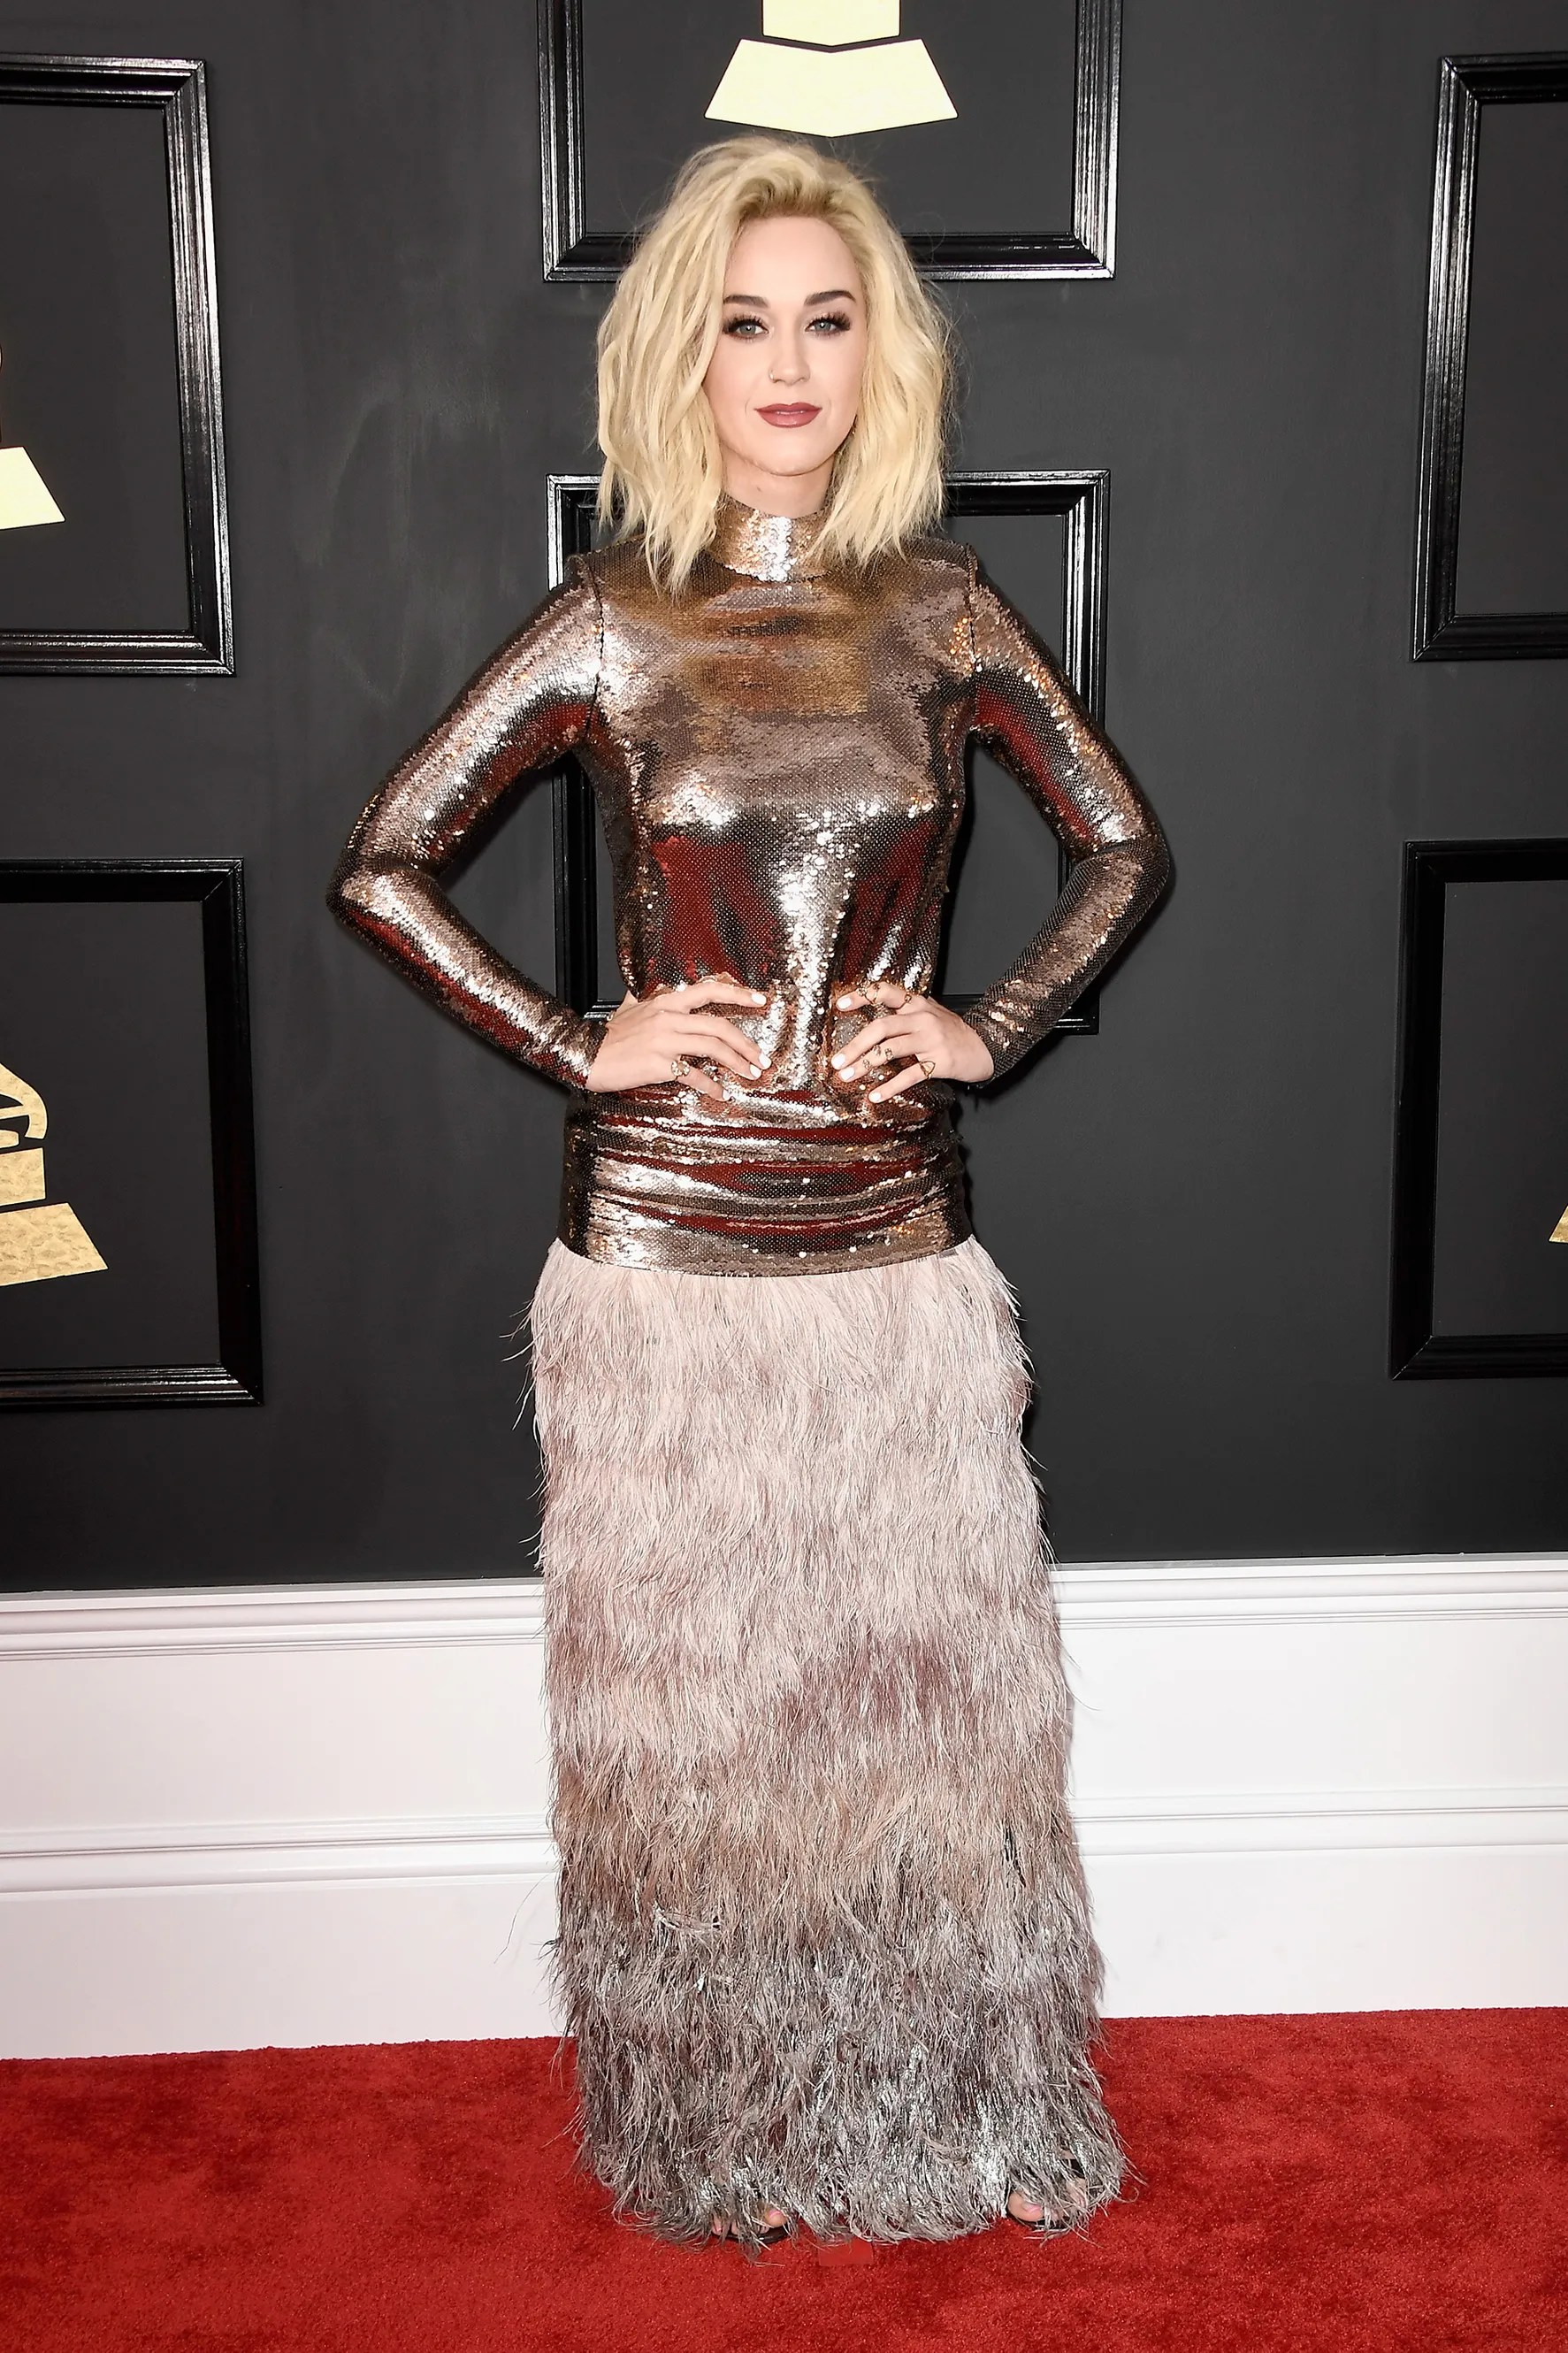 Photo 1 from Most Unfortunately Evocative of a Freshly Failed Promo Stunt: Katy Perry in Tom Ford